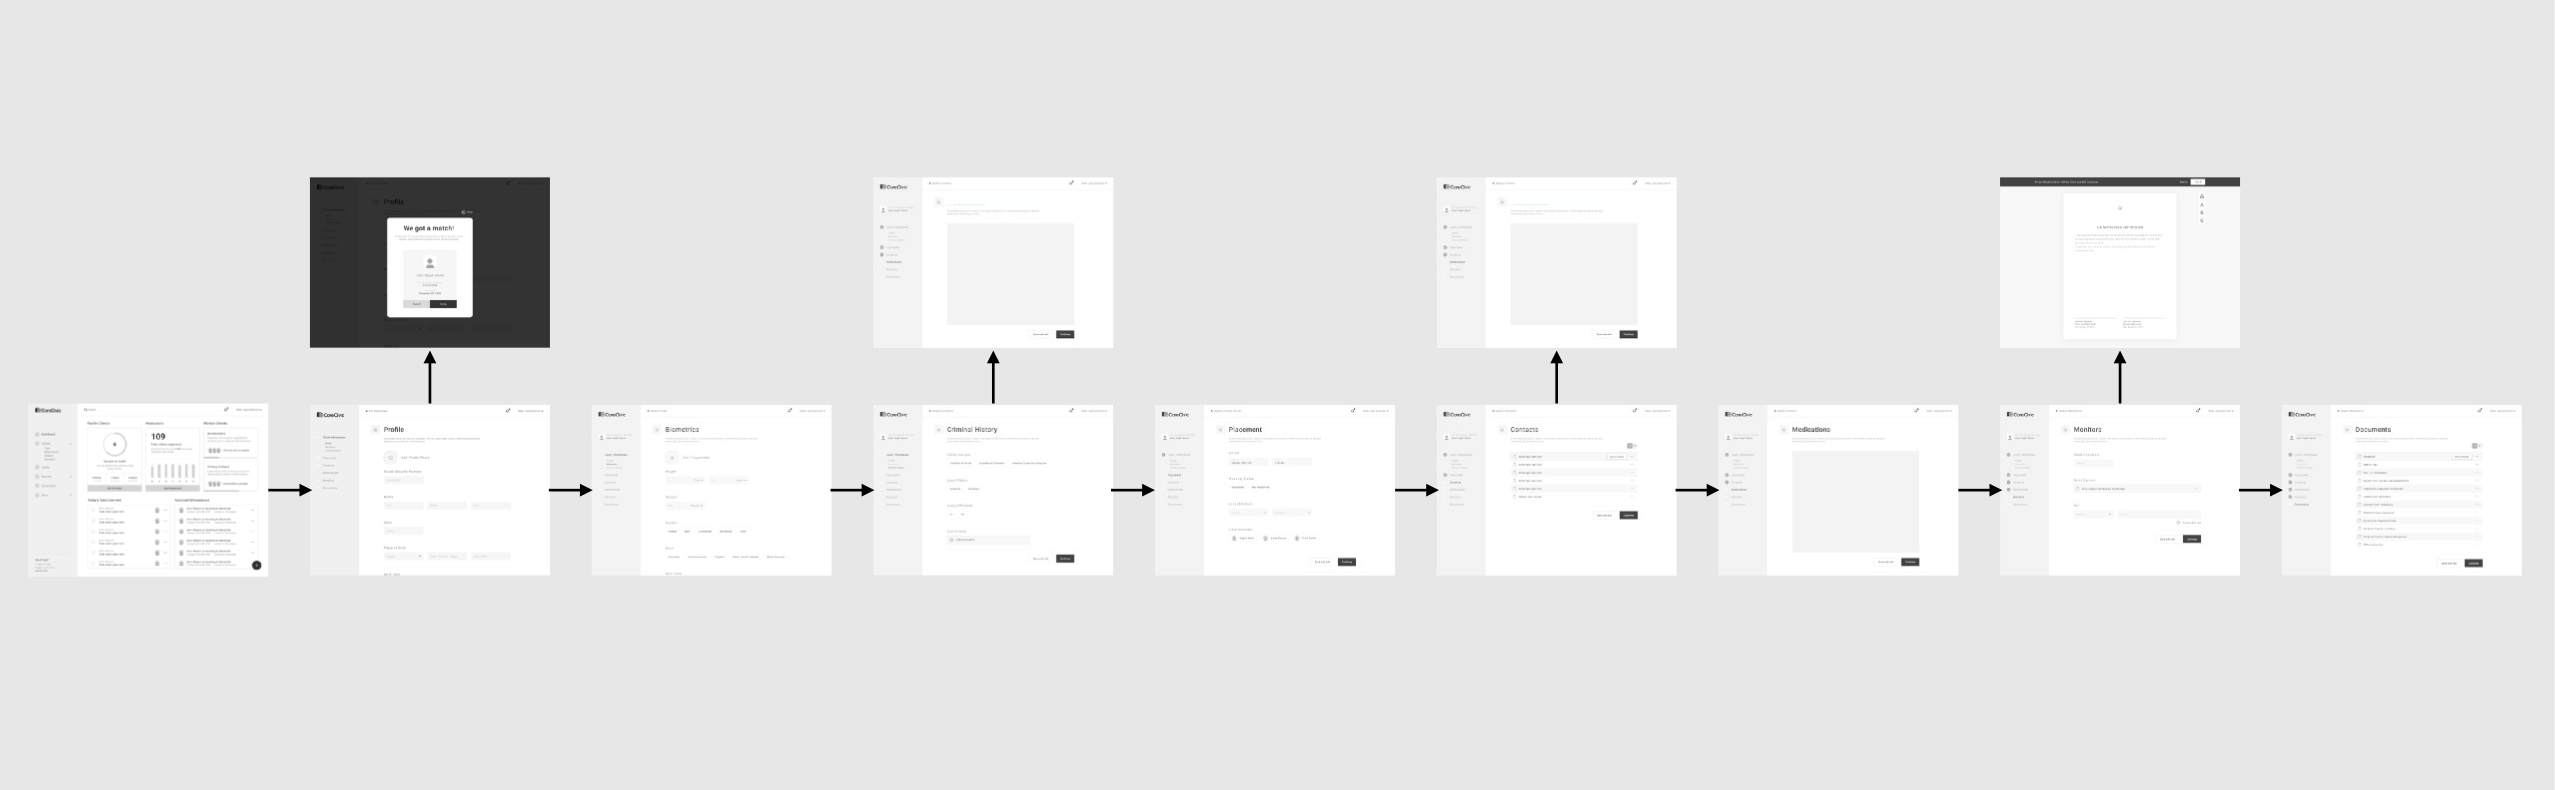 Optimized workflow derived from user research